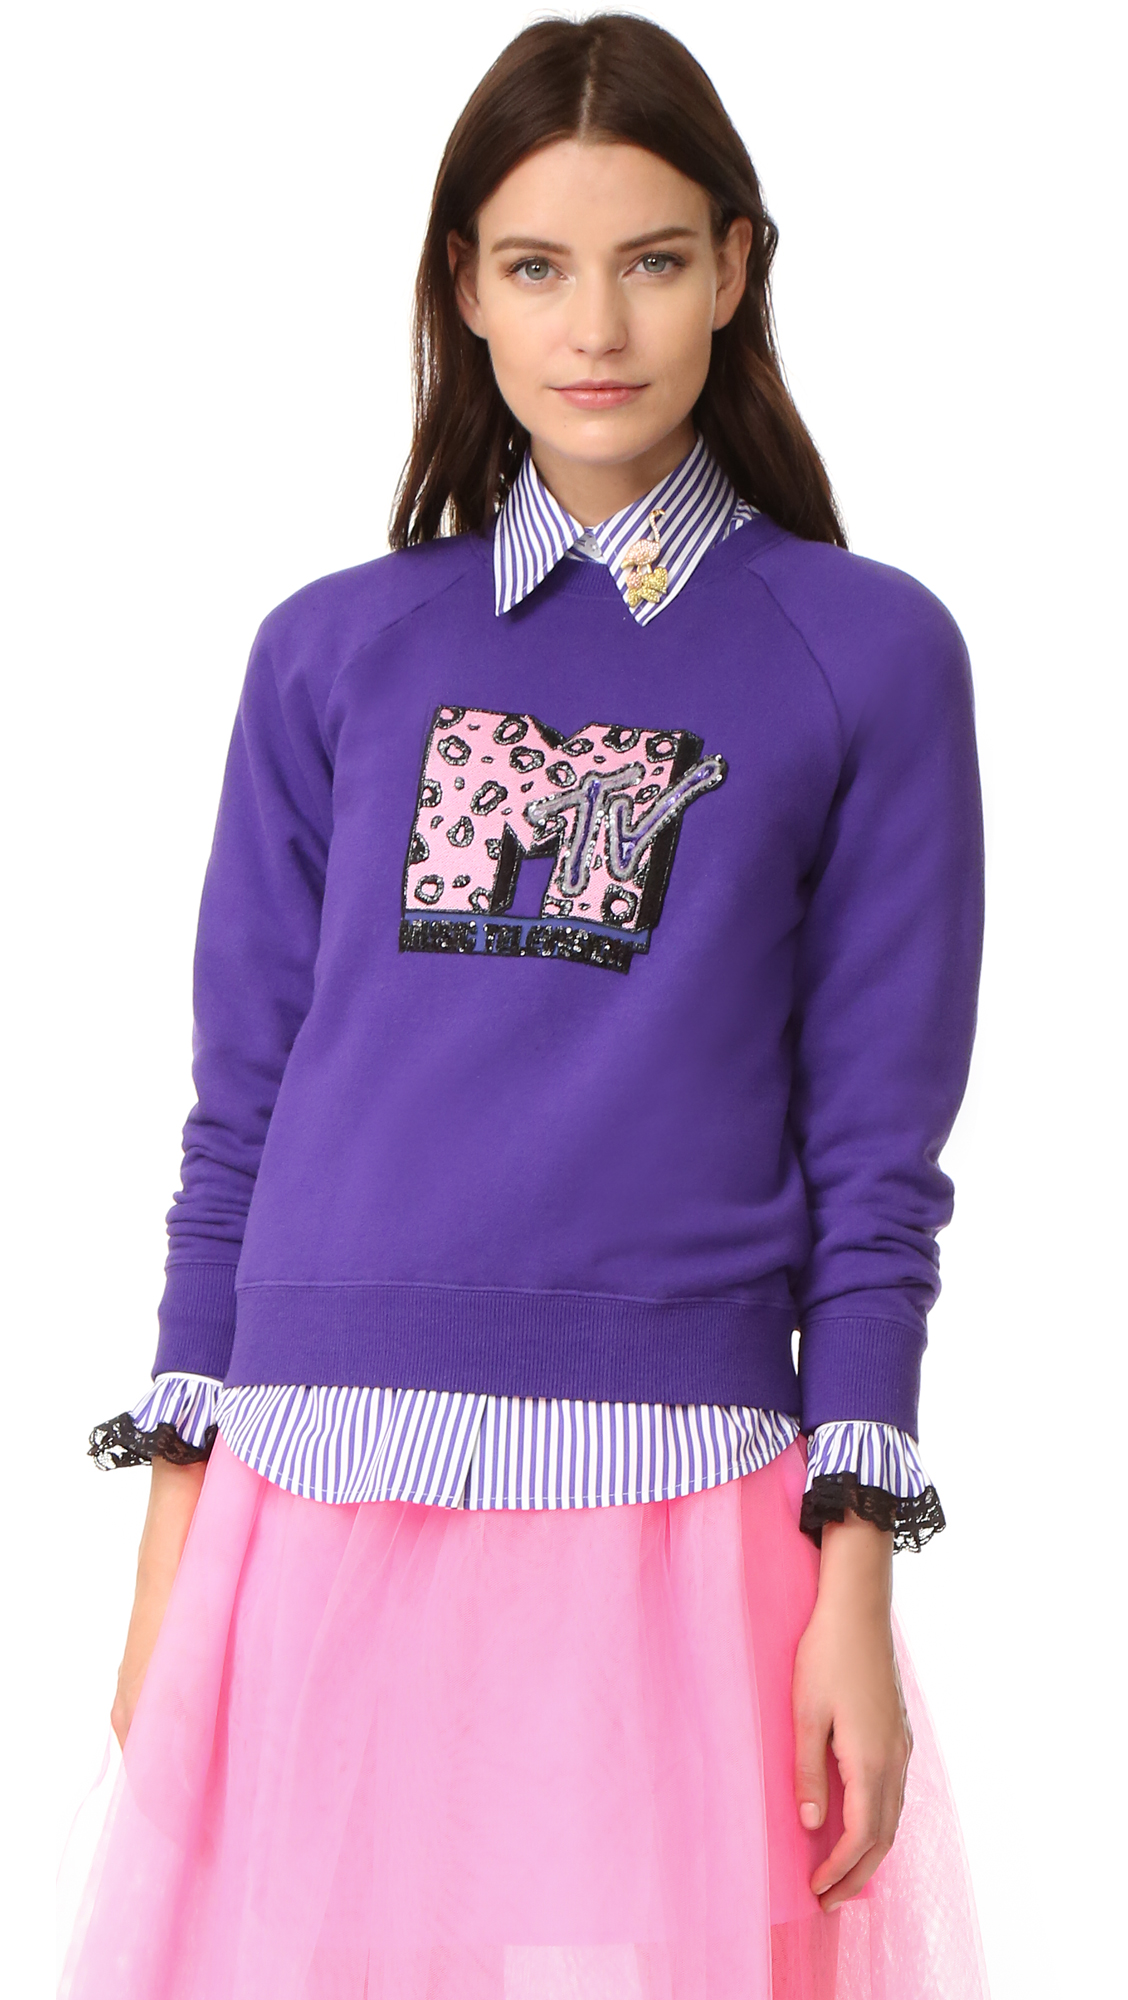 A sequined MTV logo gives this Marc Jacobs sweatshirt a retro inspired look. Crew neckline. Long raglan sleeves. Fabric: French terry. 100% cotton. Hand wash. Imported, China. Measurements Length: 22in / 56cm, from shoulder Measurements from size S.